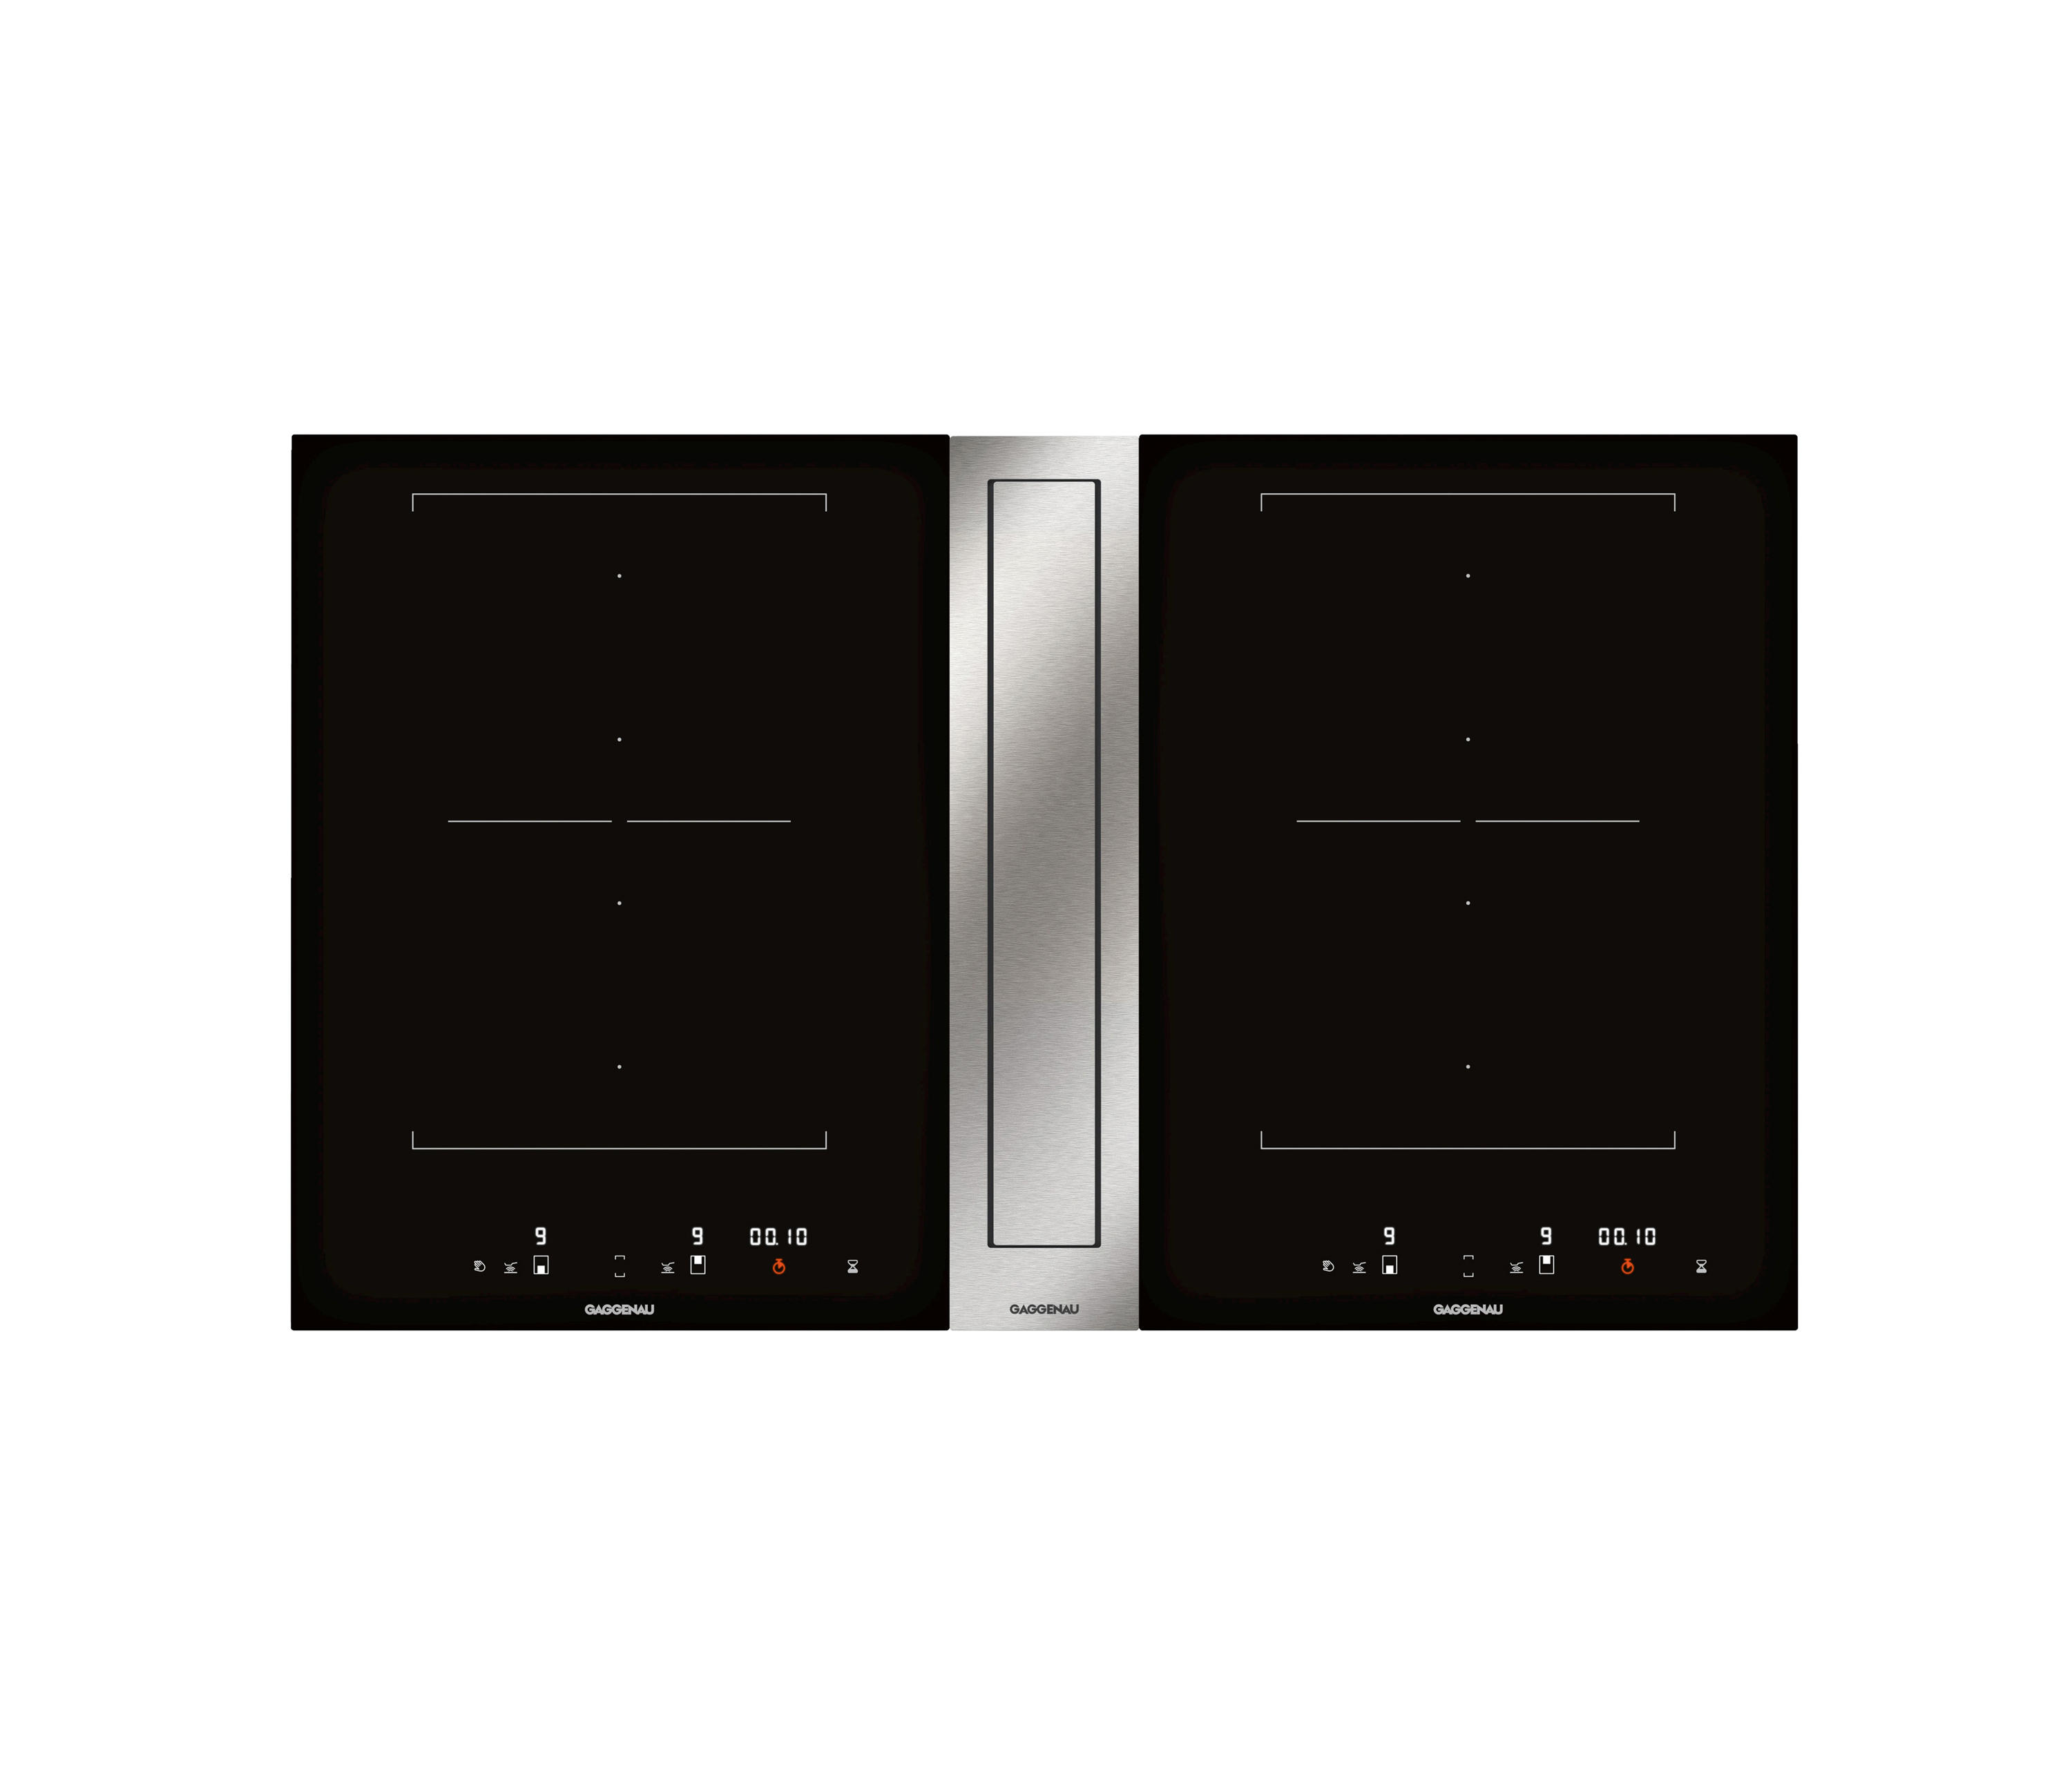 FLEX INDUCTION COOKTOP WITH DOWNDRAFT VENTILATION | CVL 420 ...